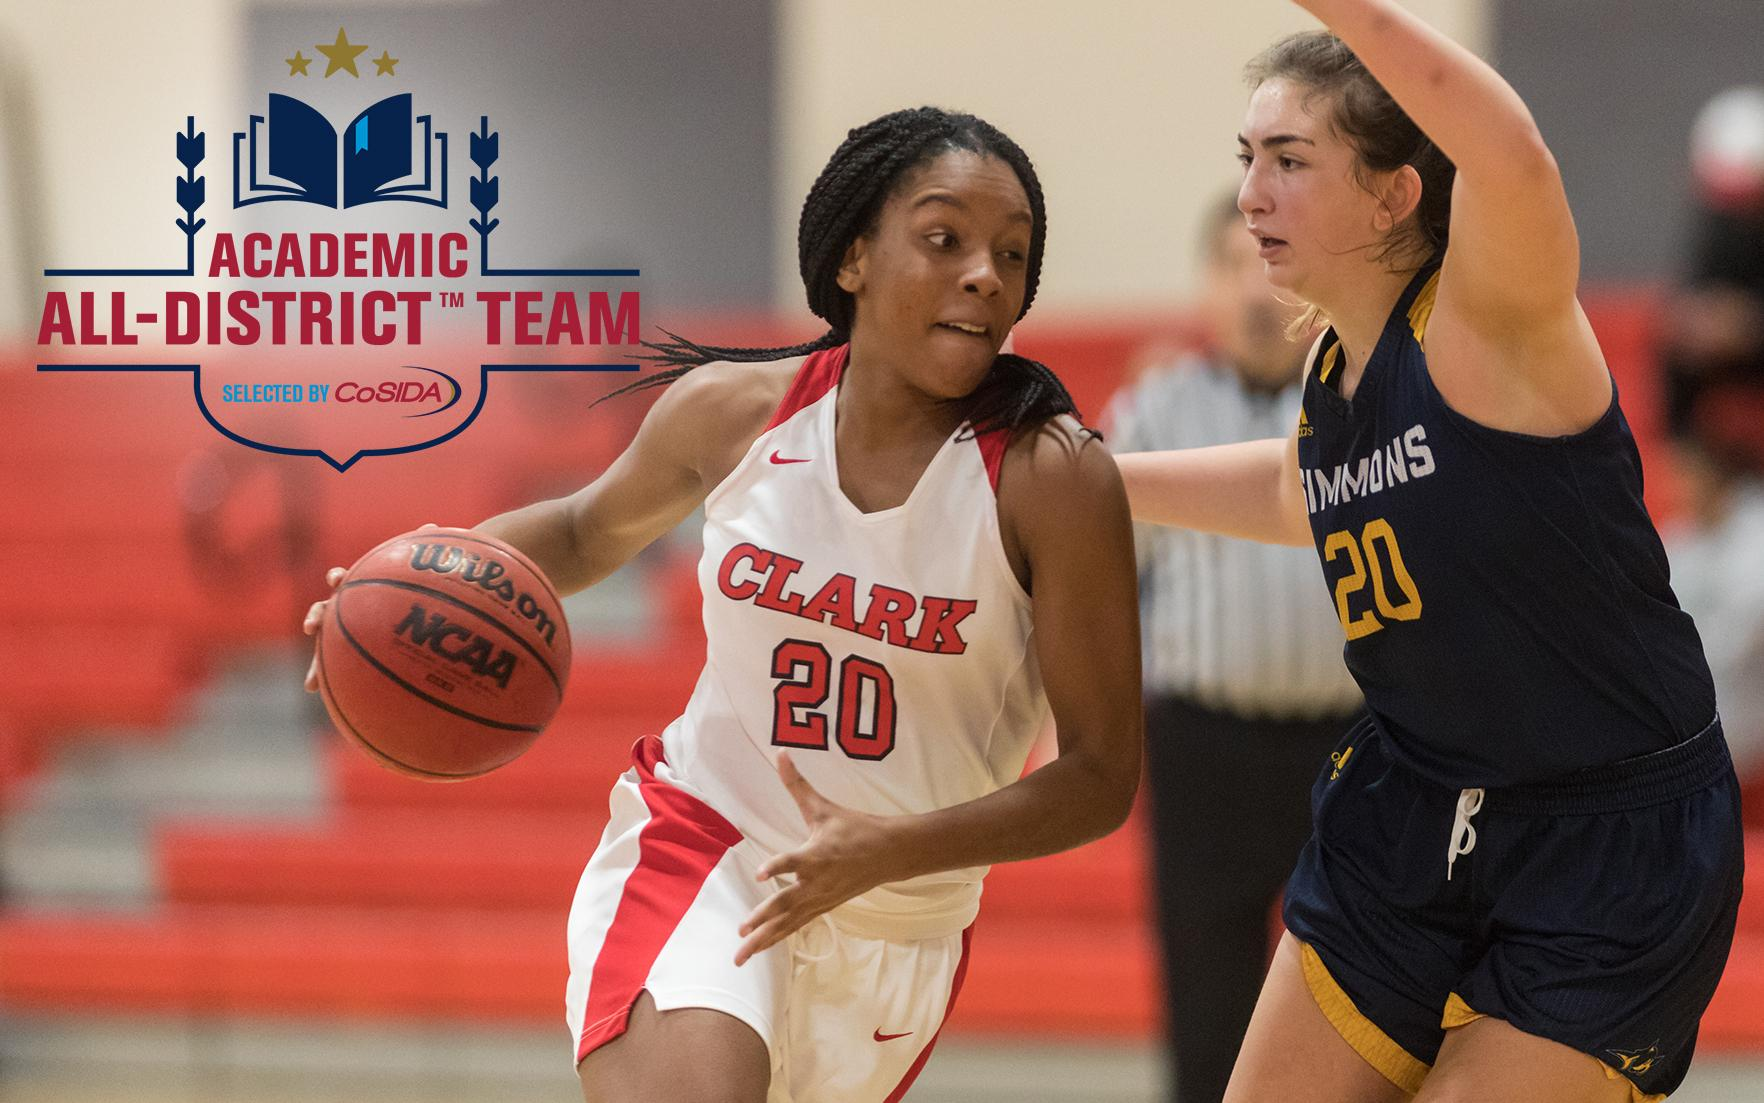 Ezemma Earns Spot on CoSIDA Academic All-District First Team